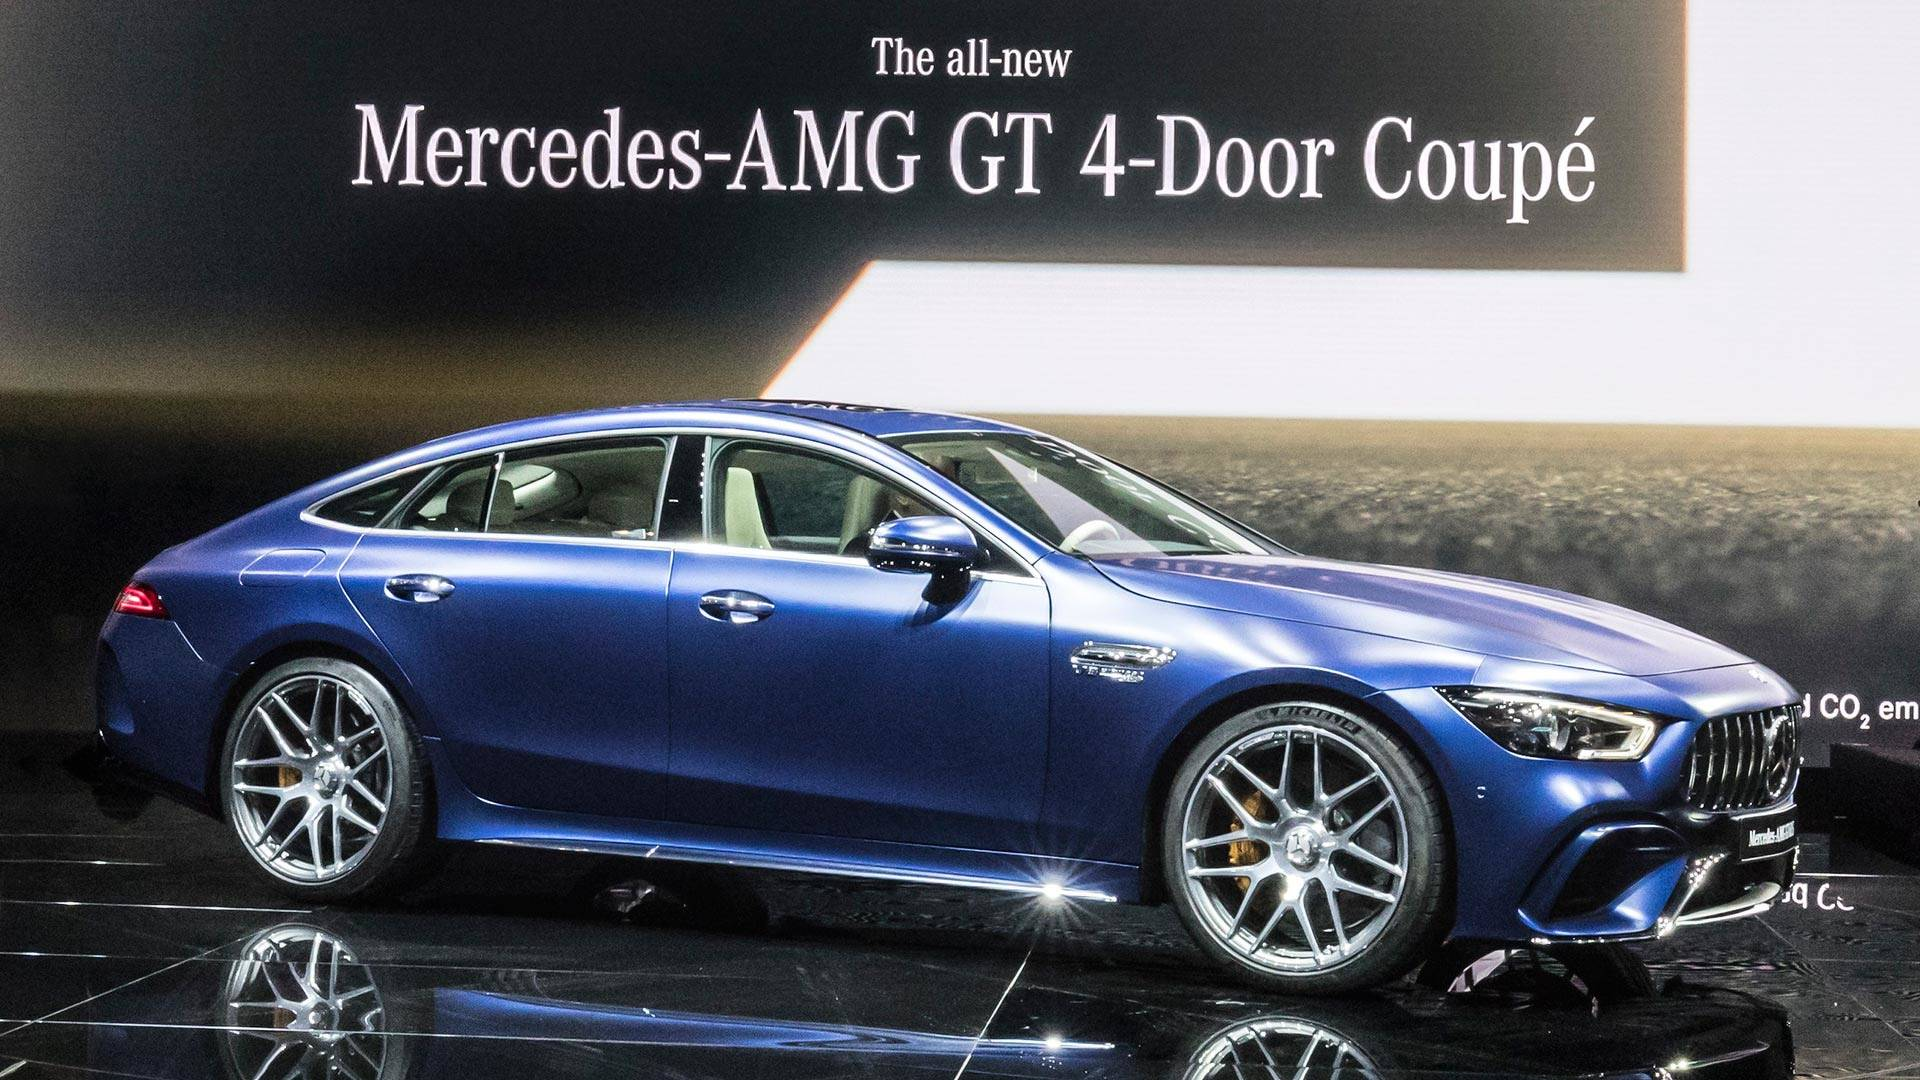 & Spend More Than 30 Minutes With The Mercedes-AMG GT 4-Door Coupe